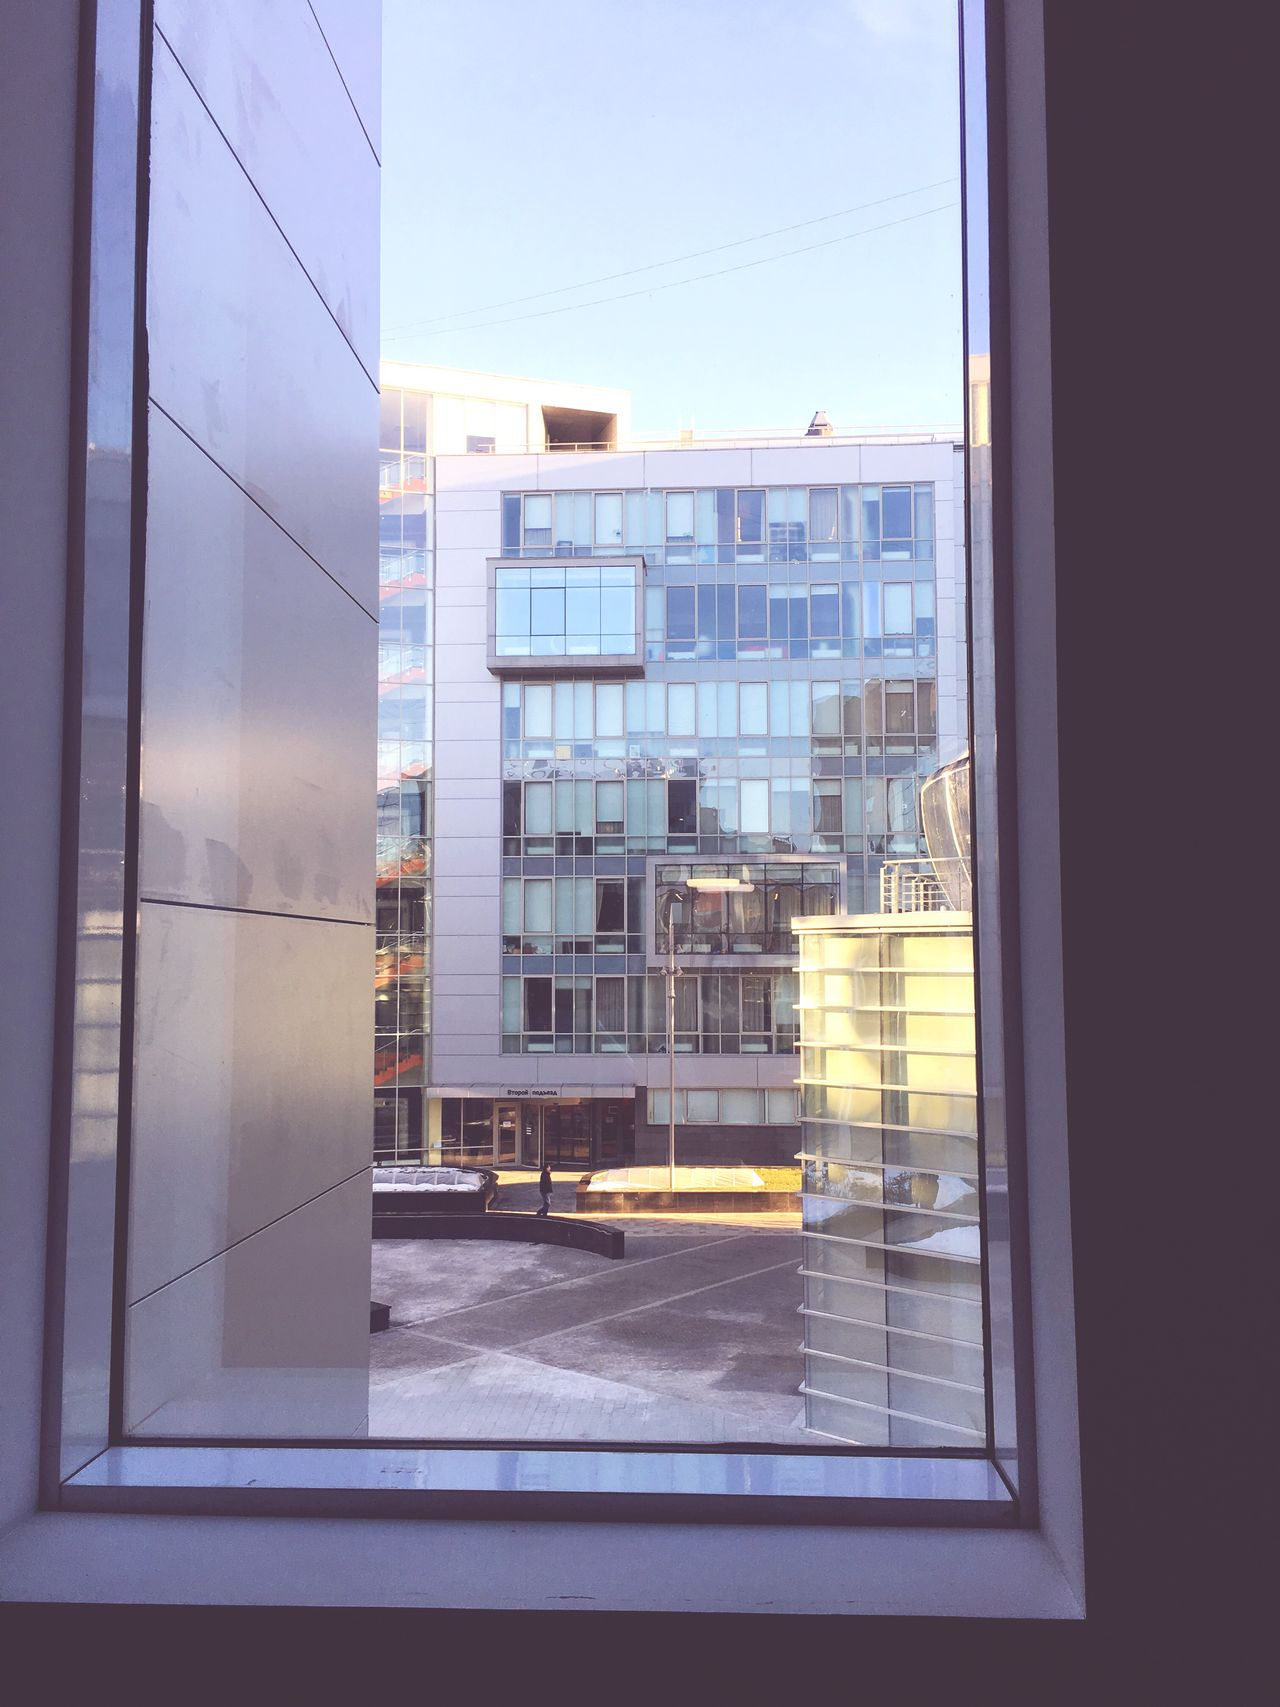 Office Building Office Building Exterior Inside Out Frame It! Framed Business Office Block Office Moscow No People City